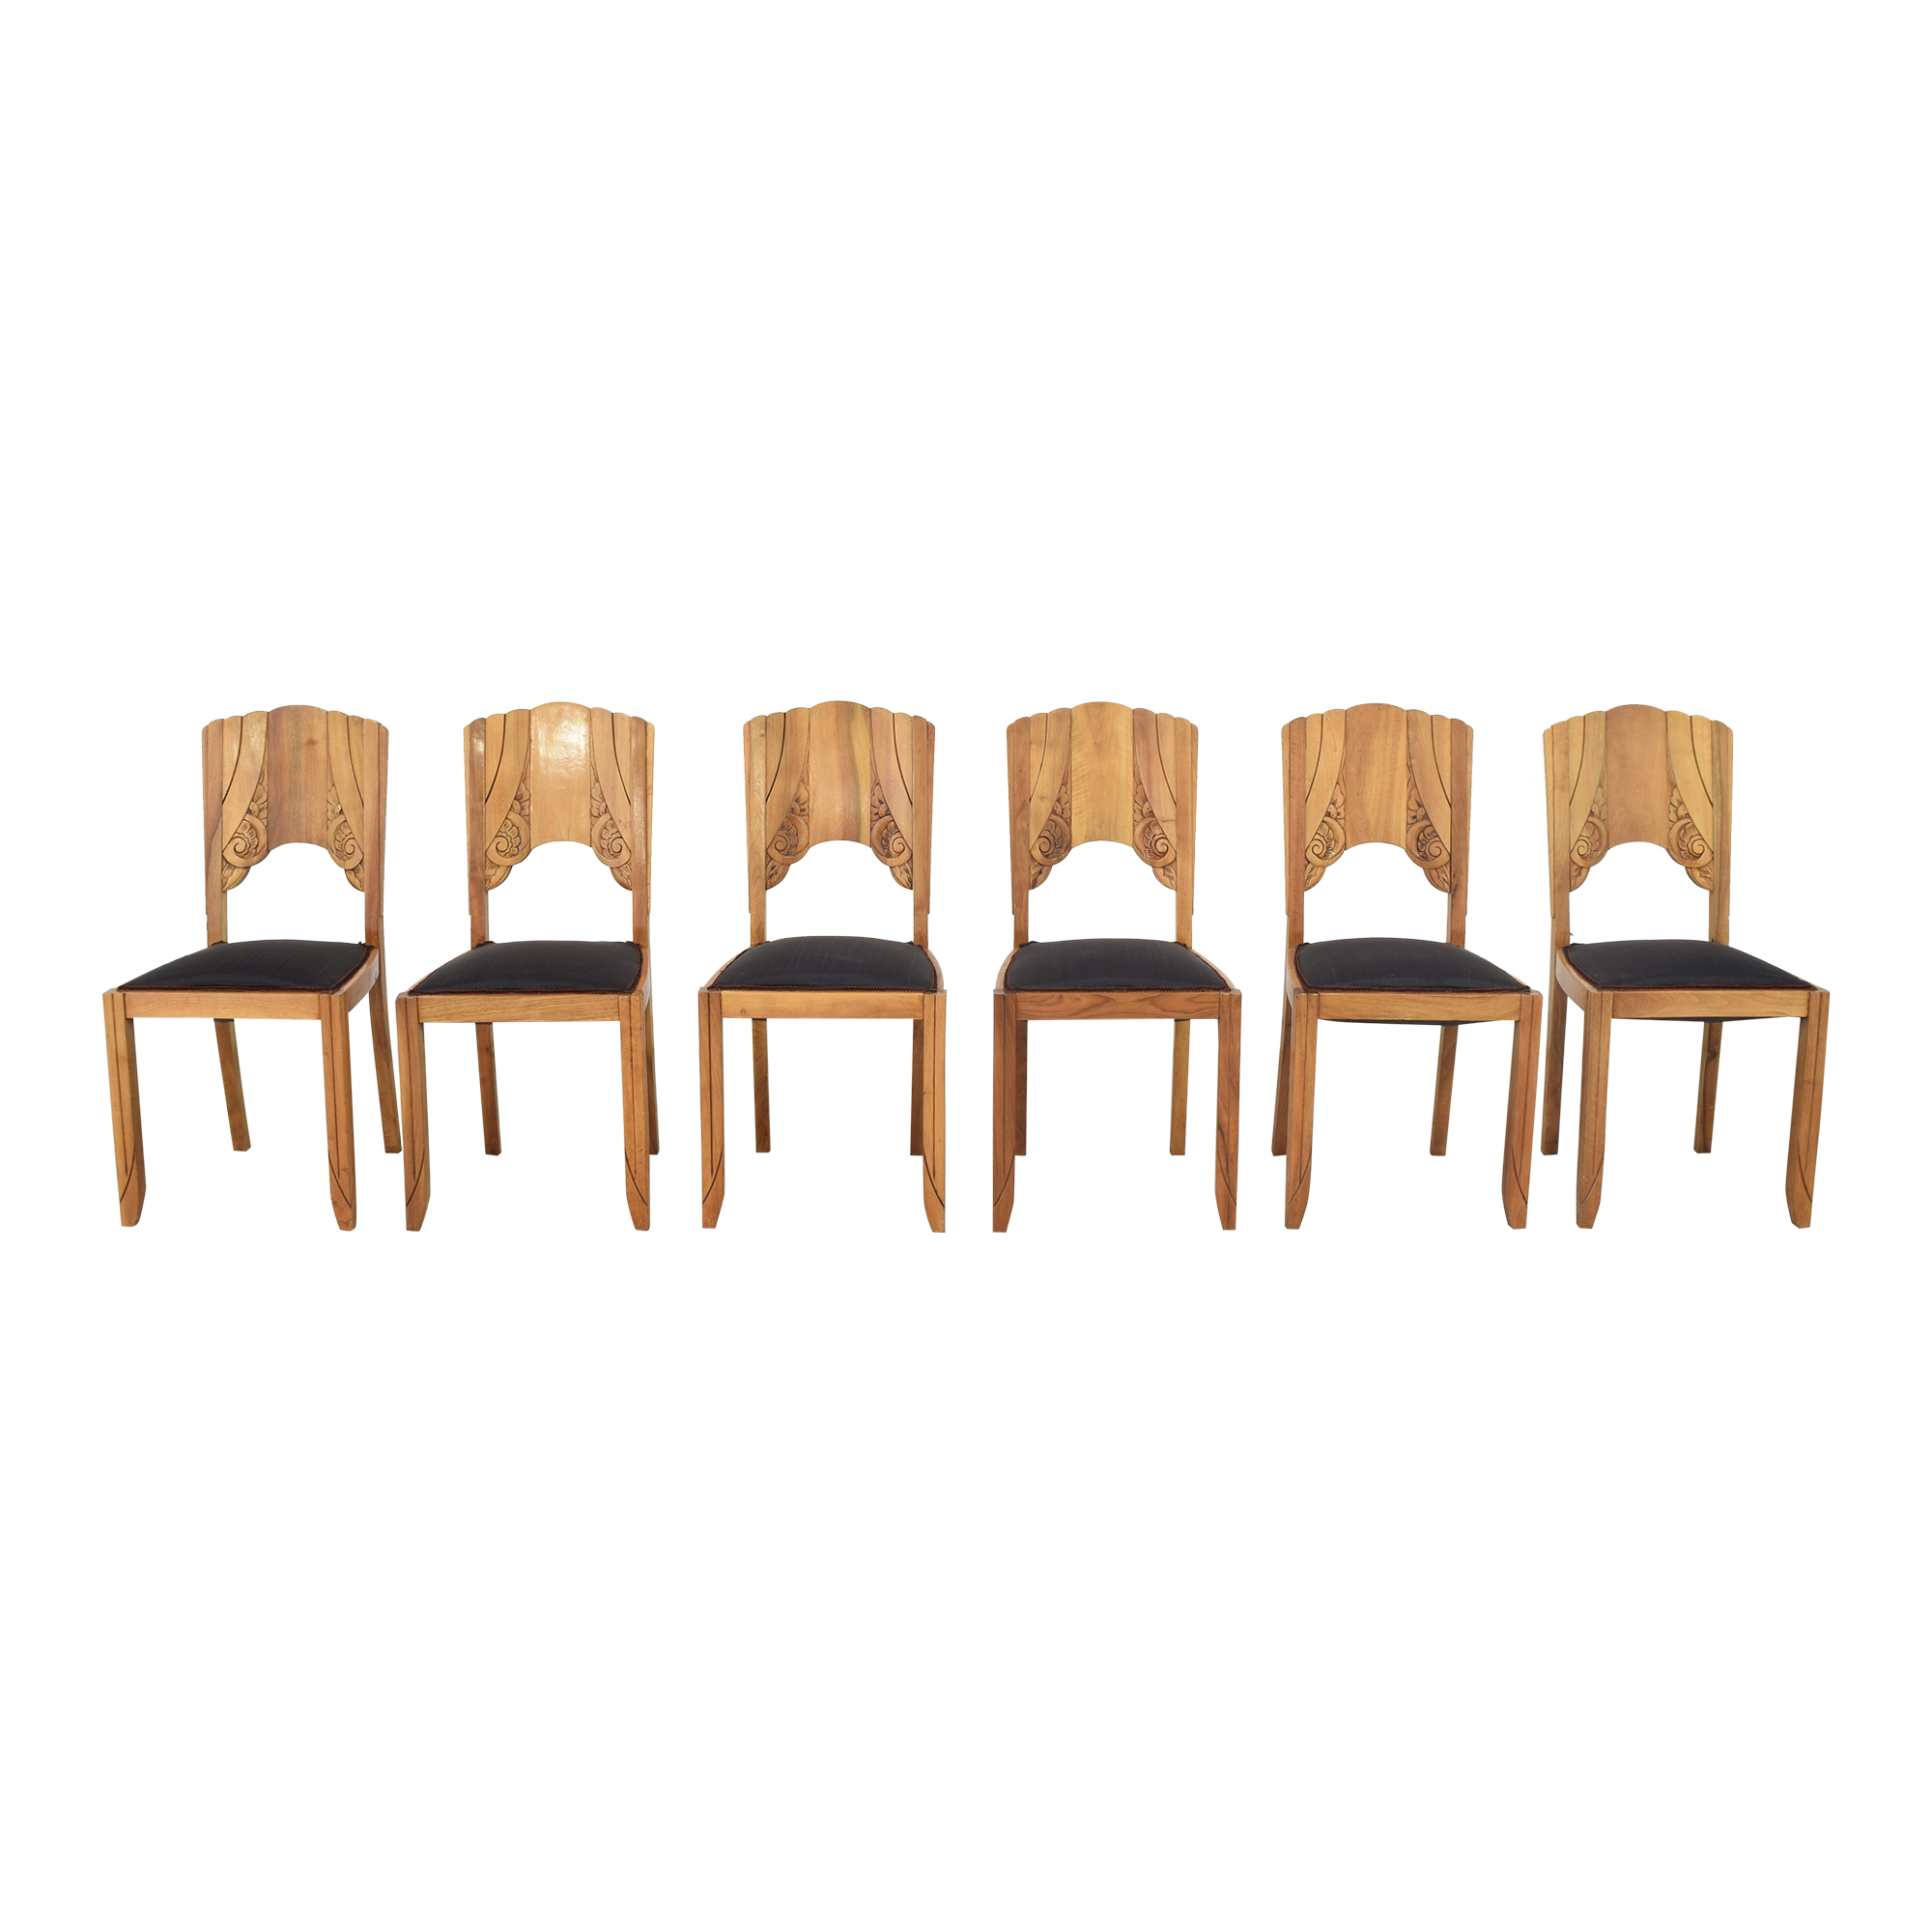 Art Nouveau-Style Dining Side Chairs Dining Chairs